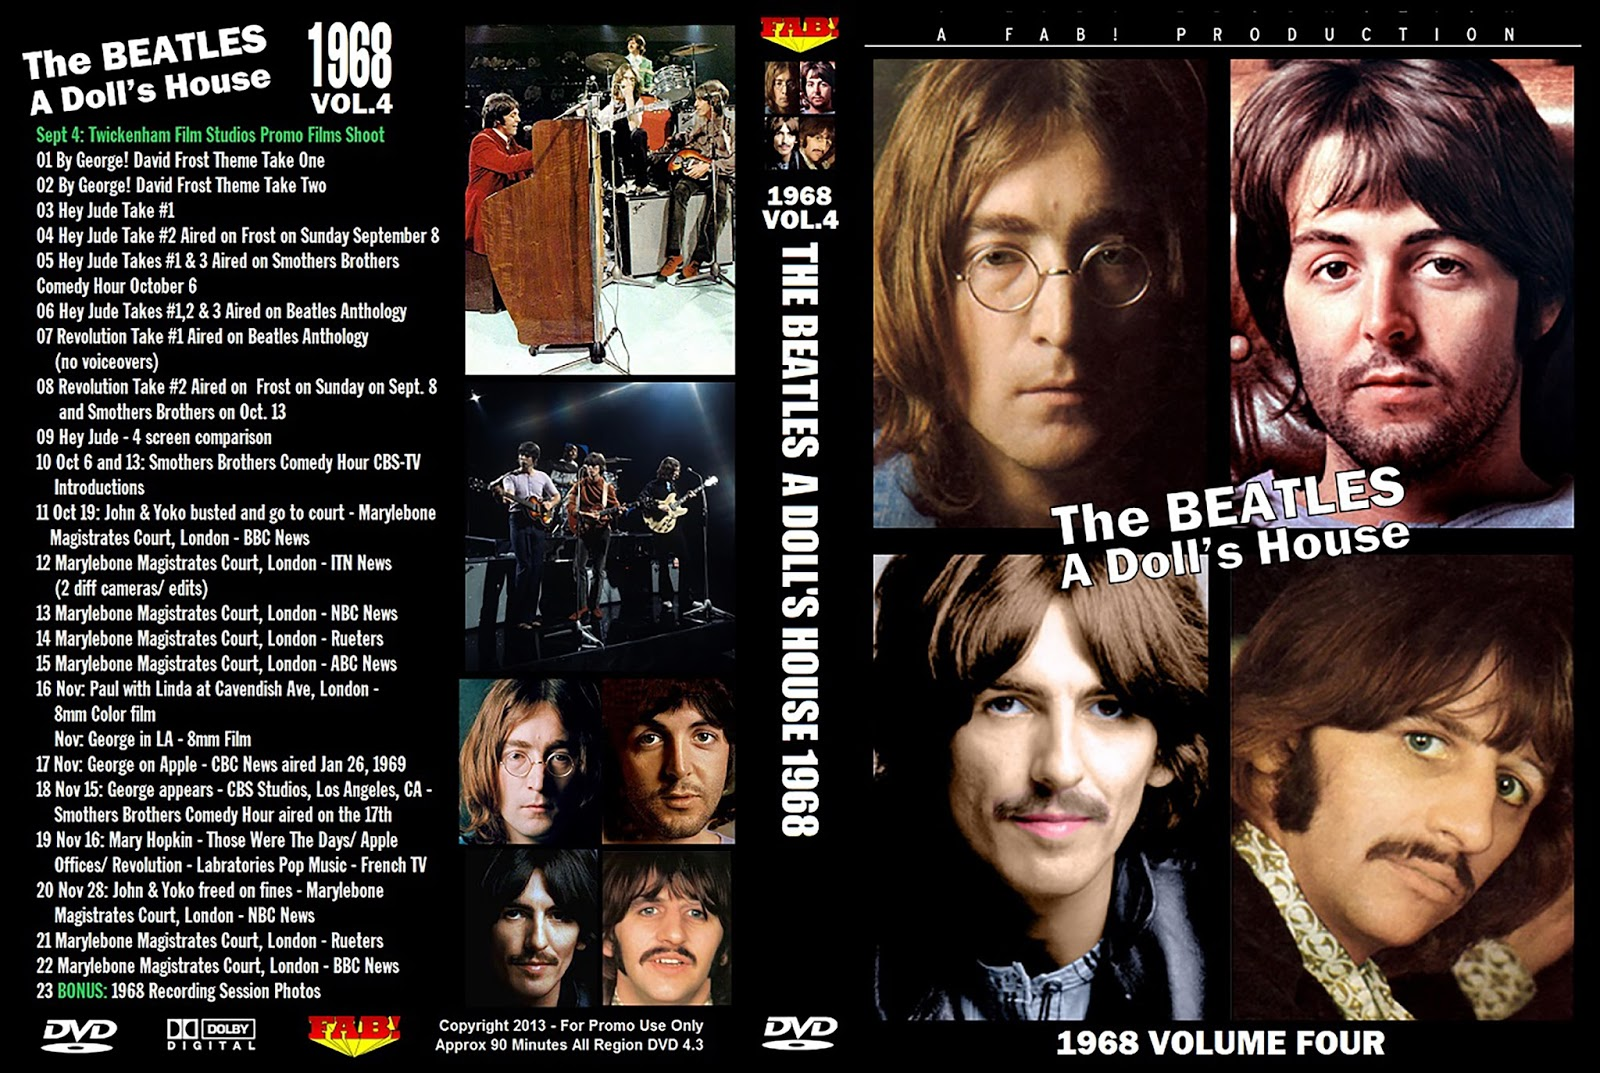 The Beatles – A Doll's House 1968 Vol.04 DVD